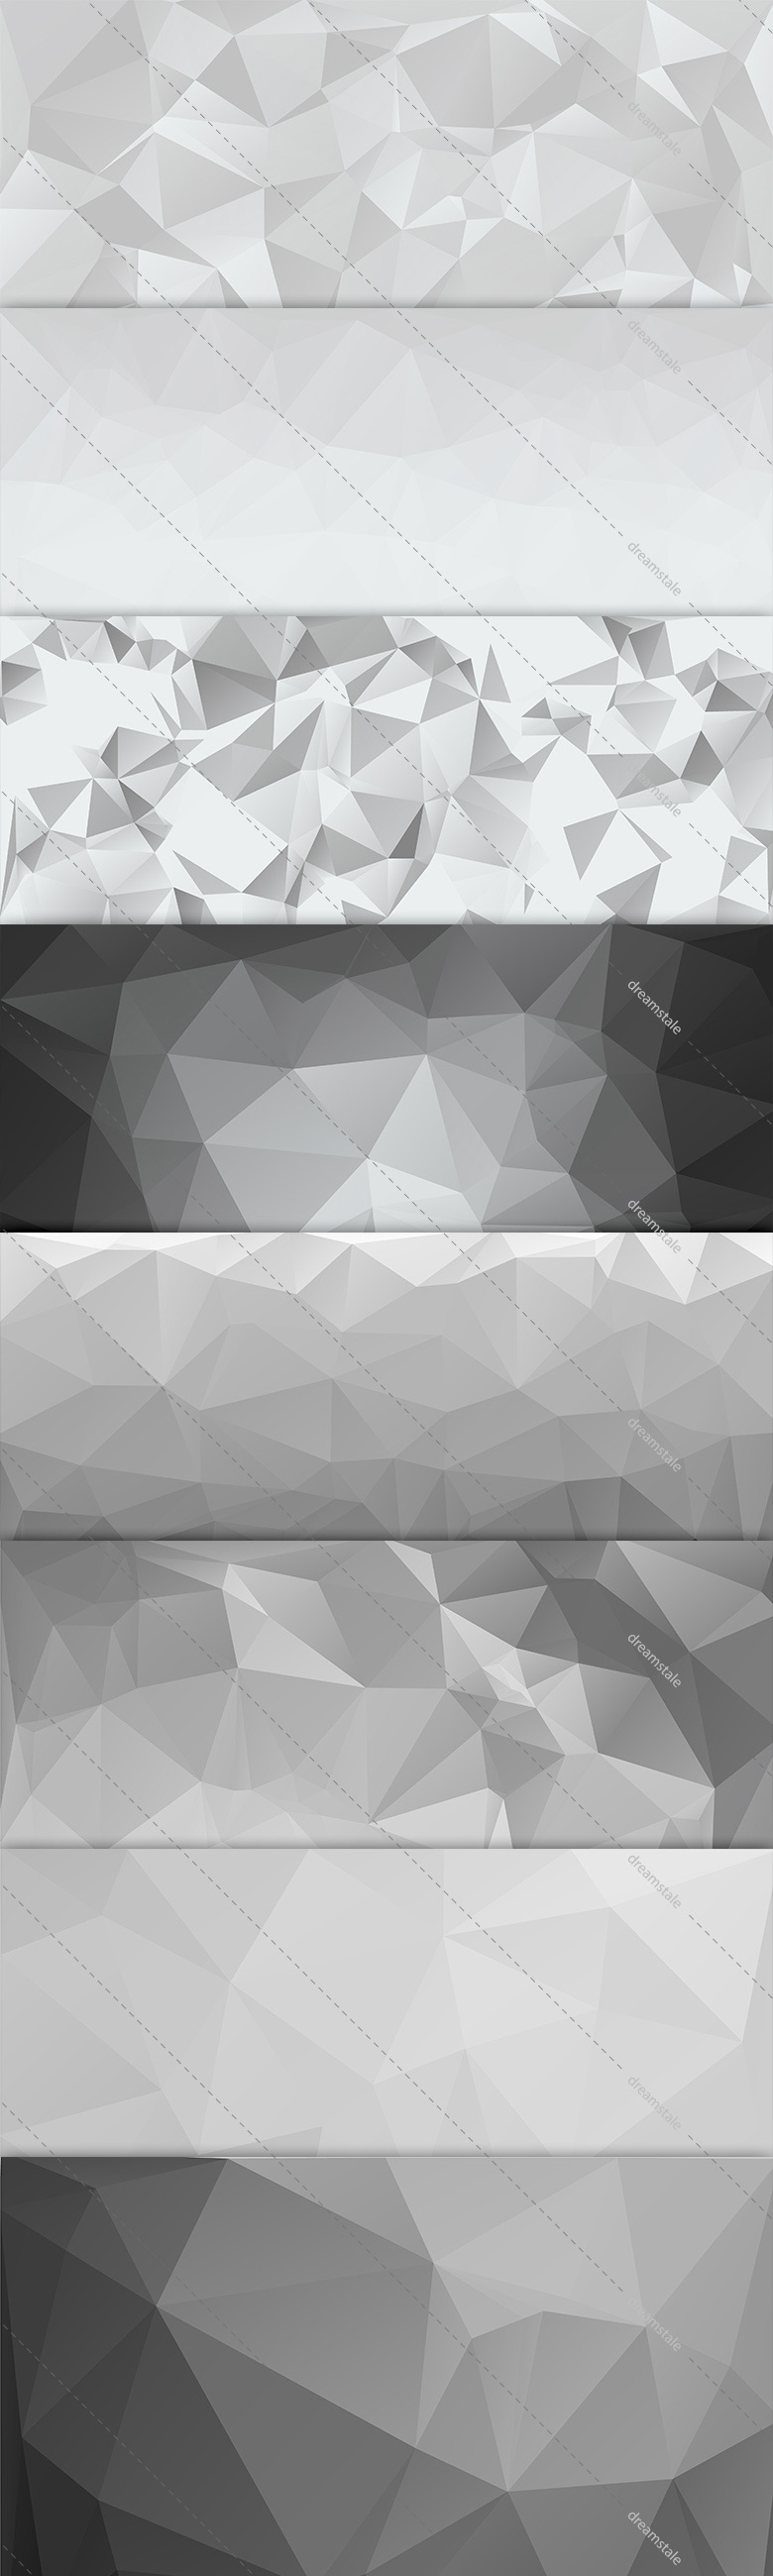 grey-low-poly-backgrounds-largre-prev